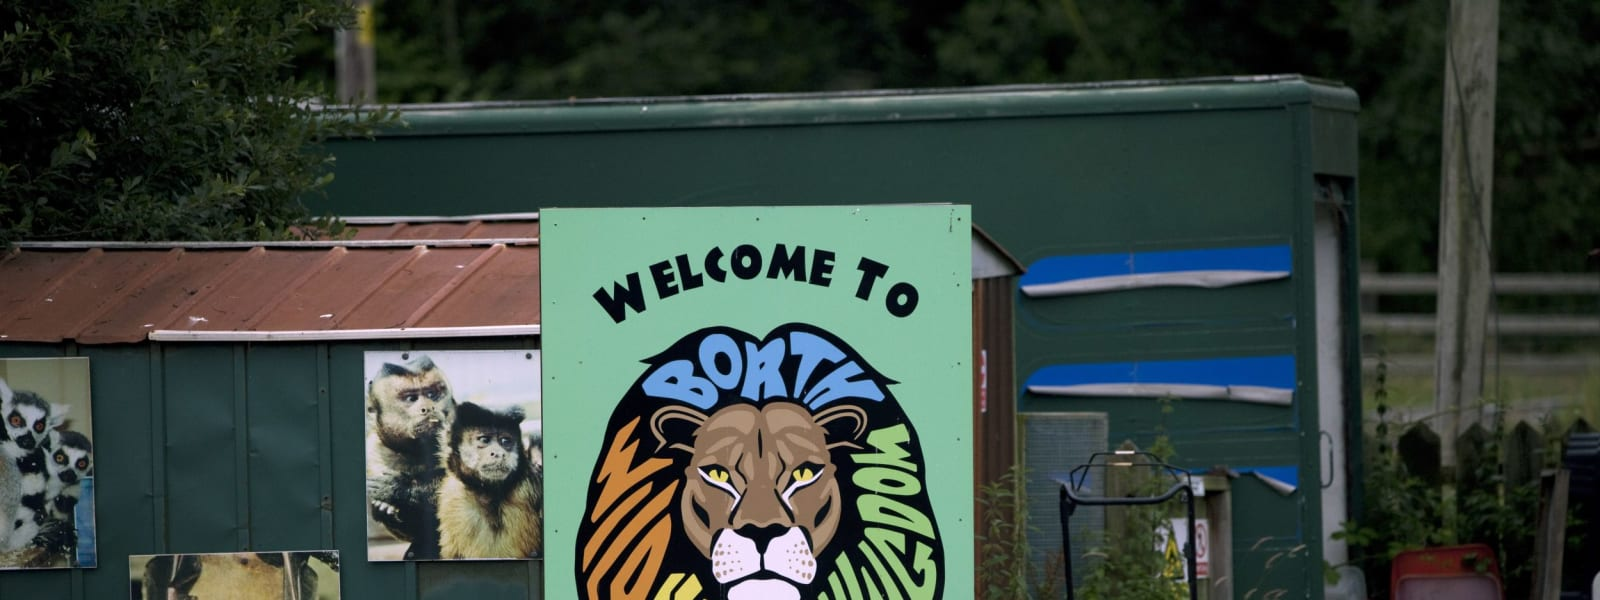 Borth Zoo Given 42 Days to Pay Huge Tax Bill